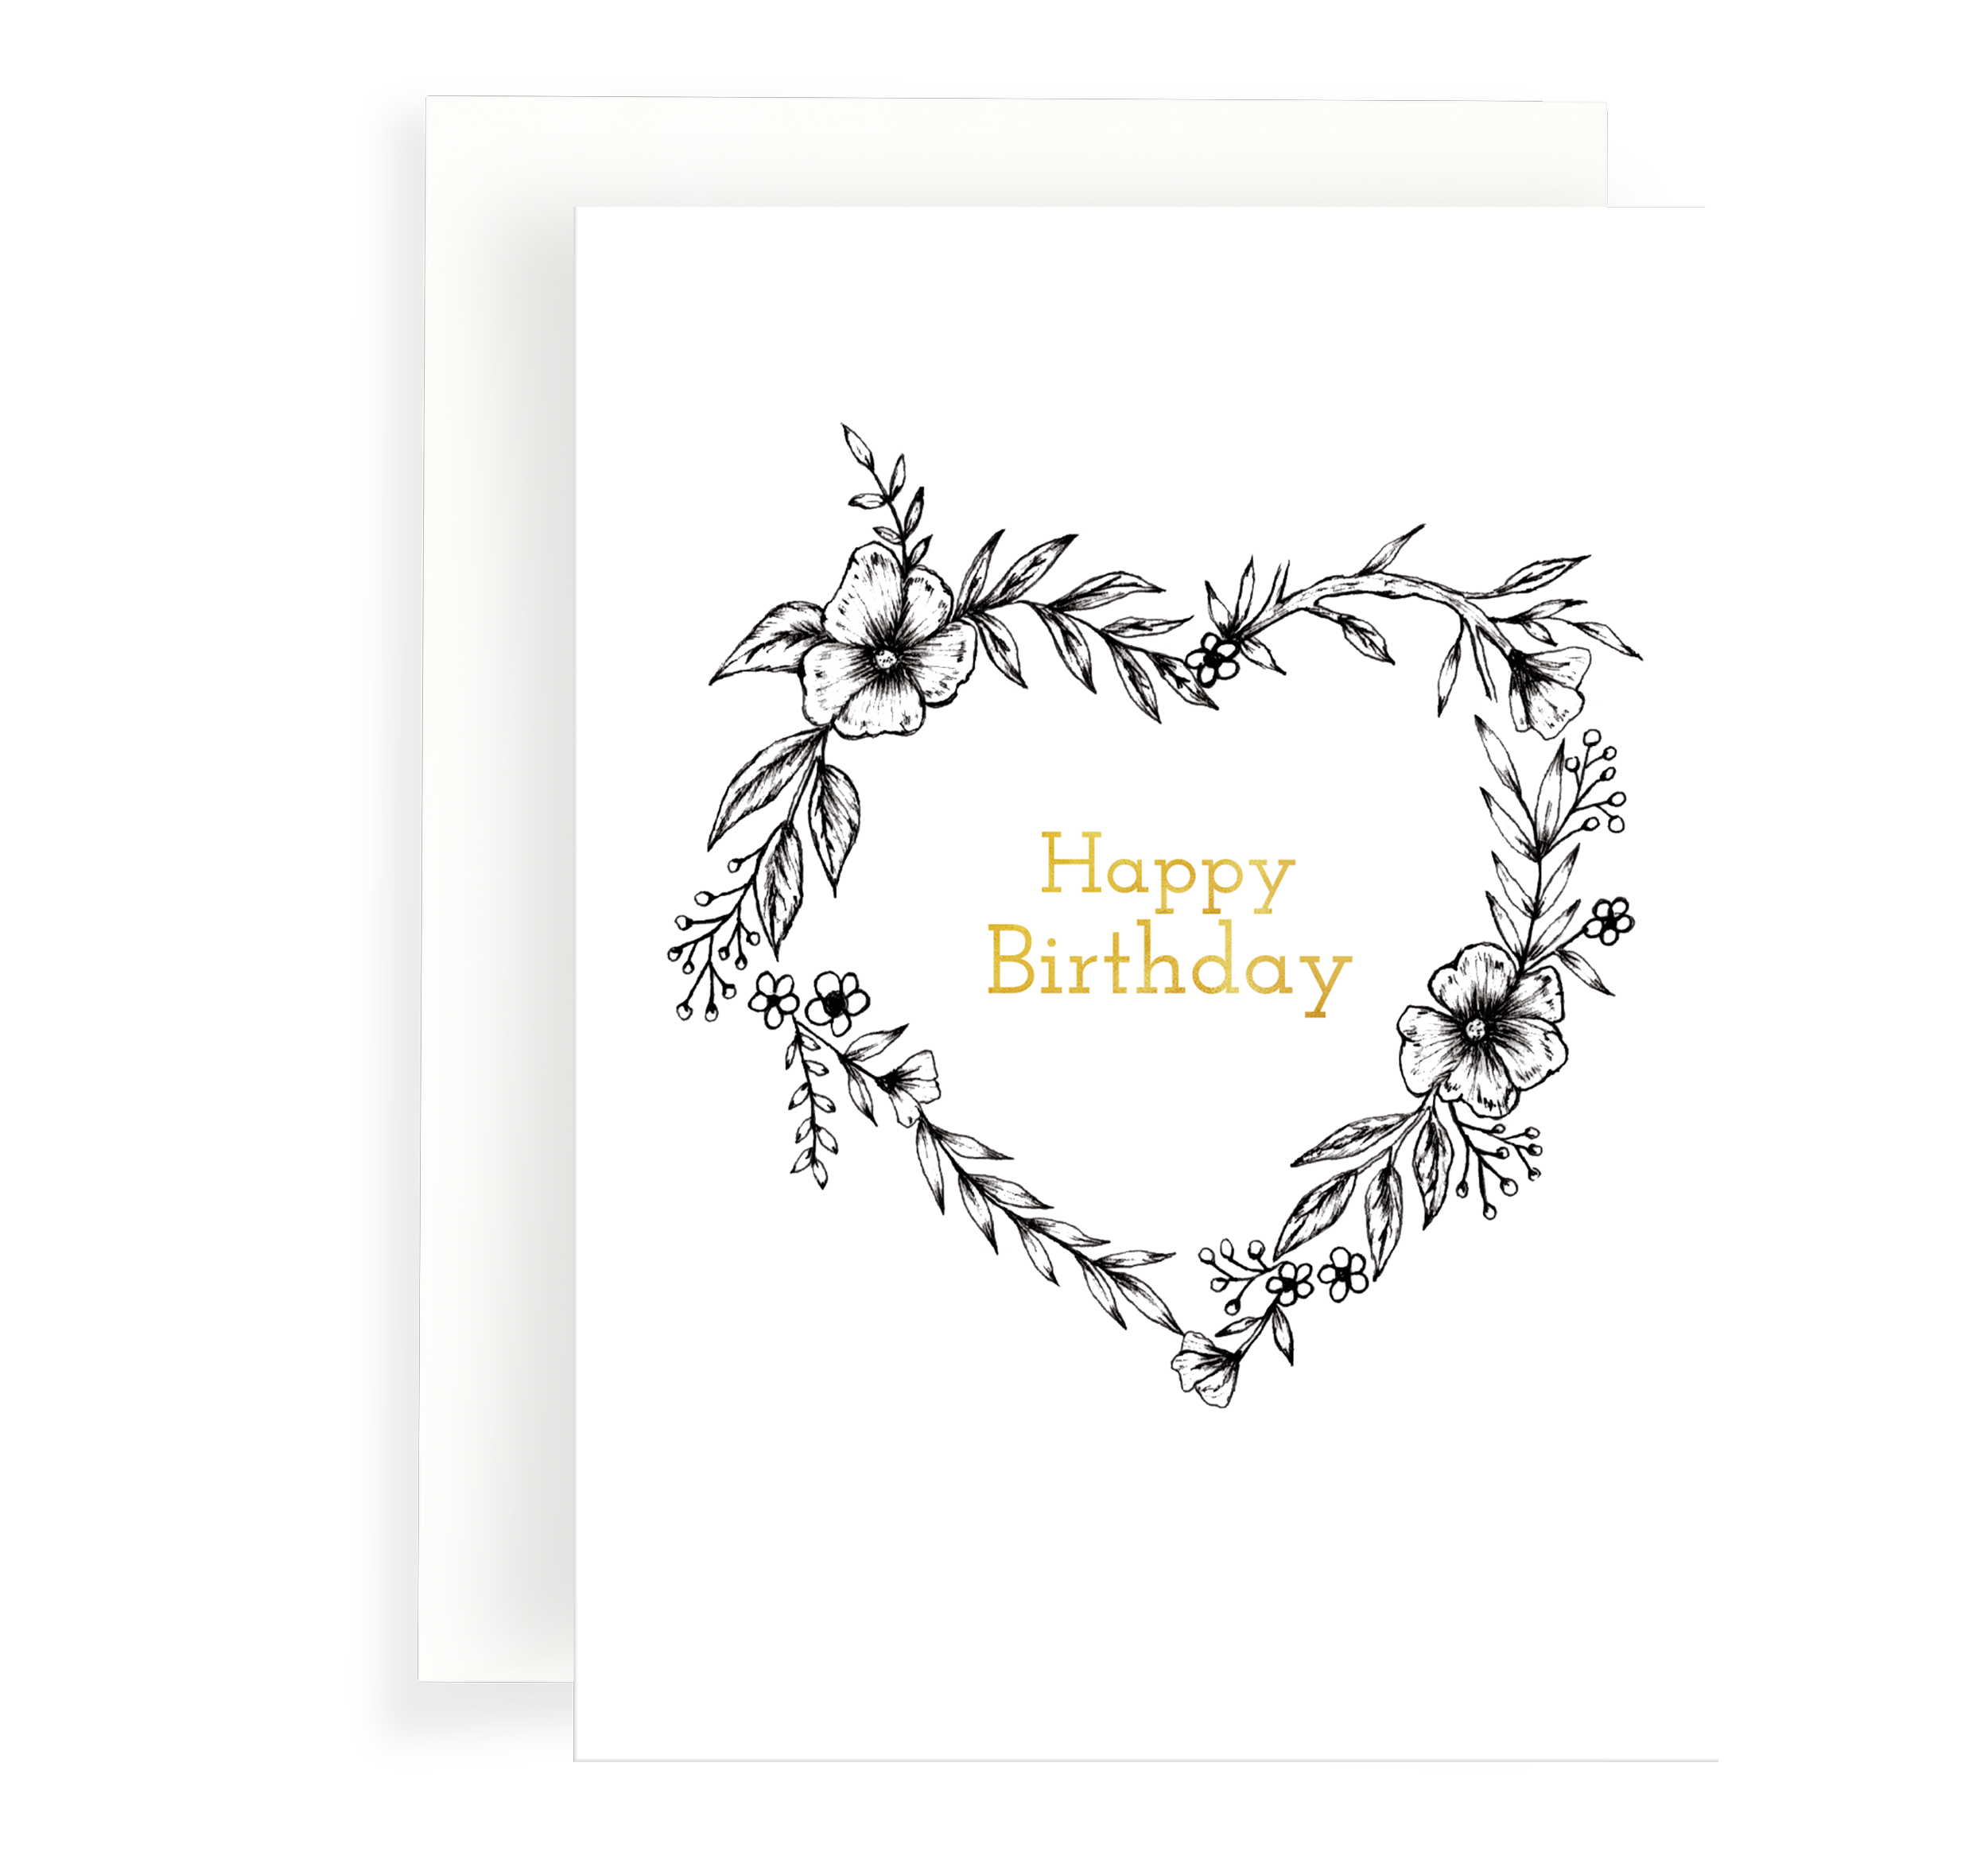 Beautiful ink illustrated floral heart wreath on a white background. Gold Foil text says 'Happy Birthday'